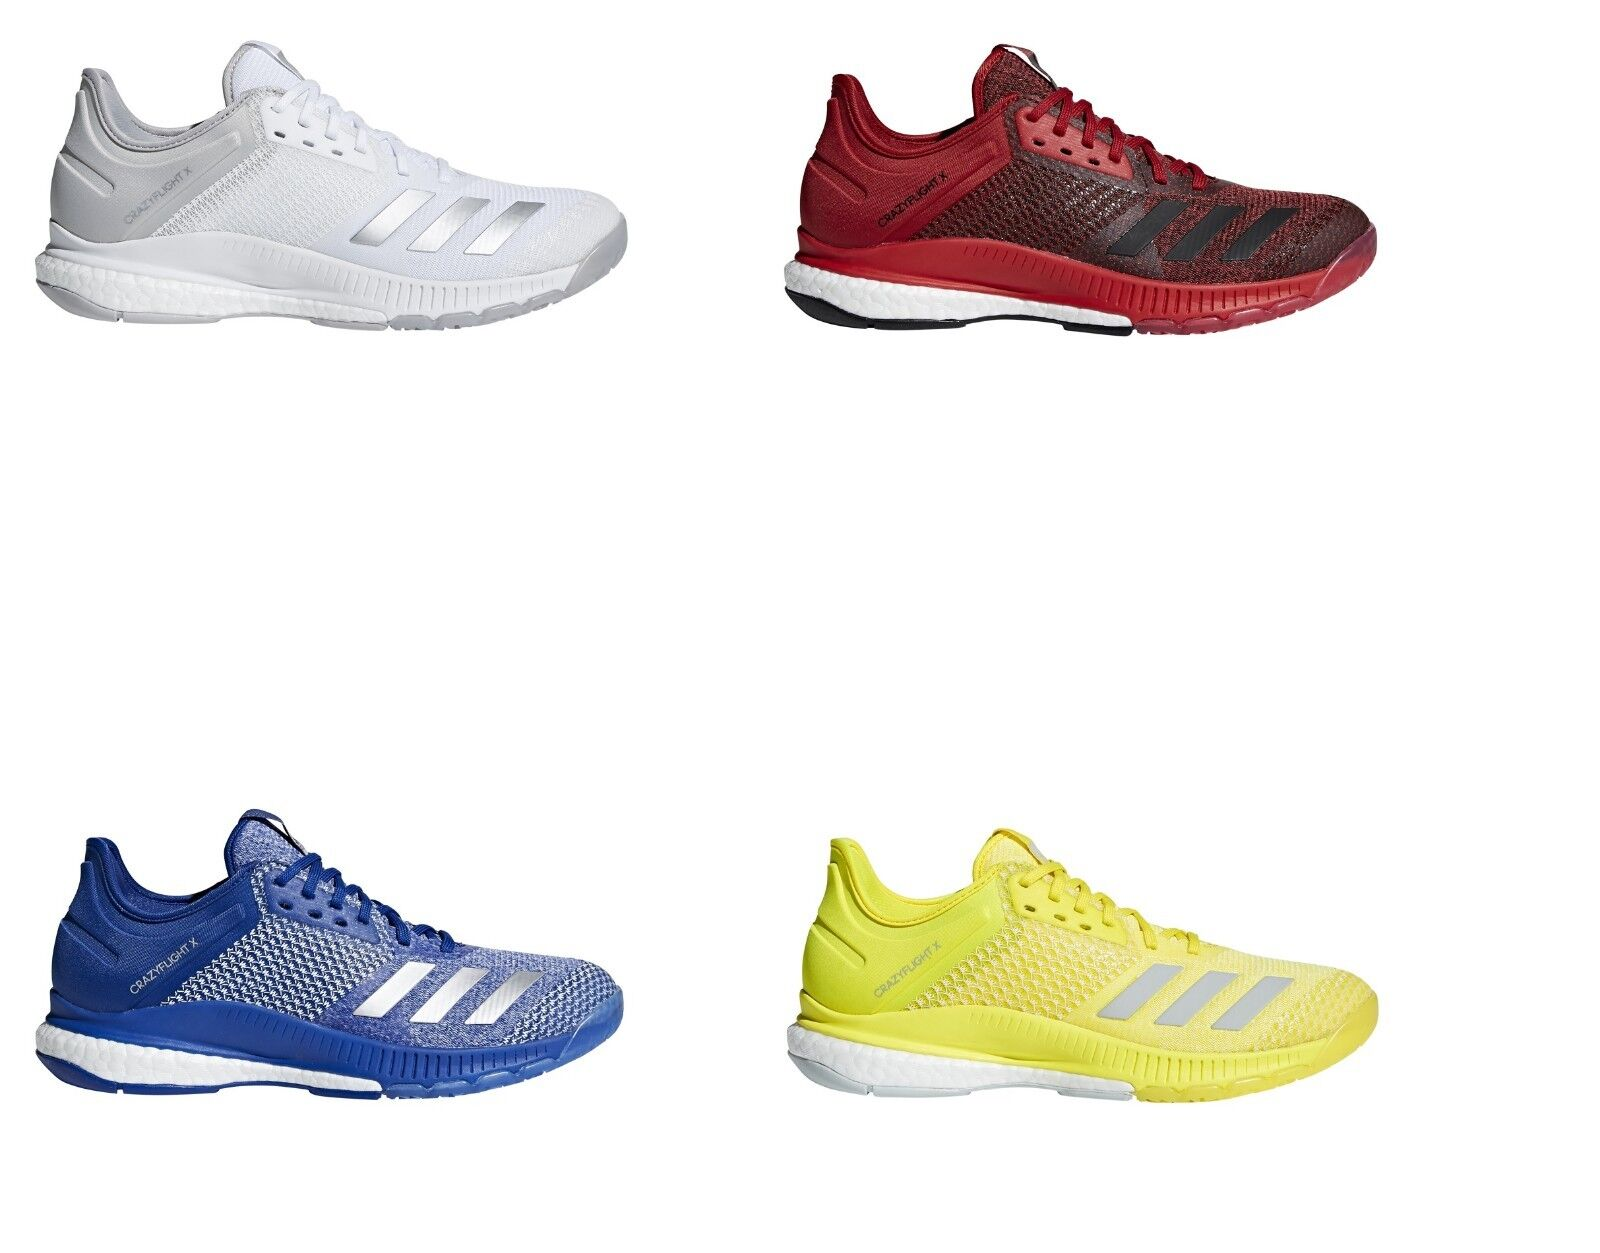 Adidas Women's Crazyflight X 2 Volleyball Shoes Sneakers Boost